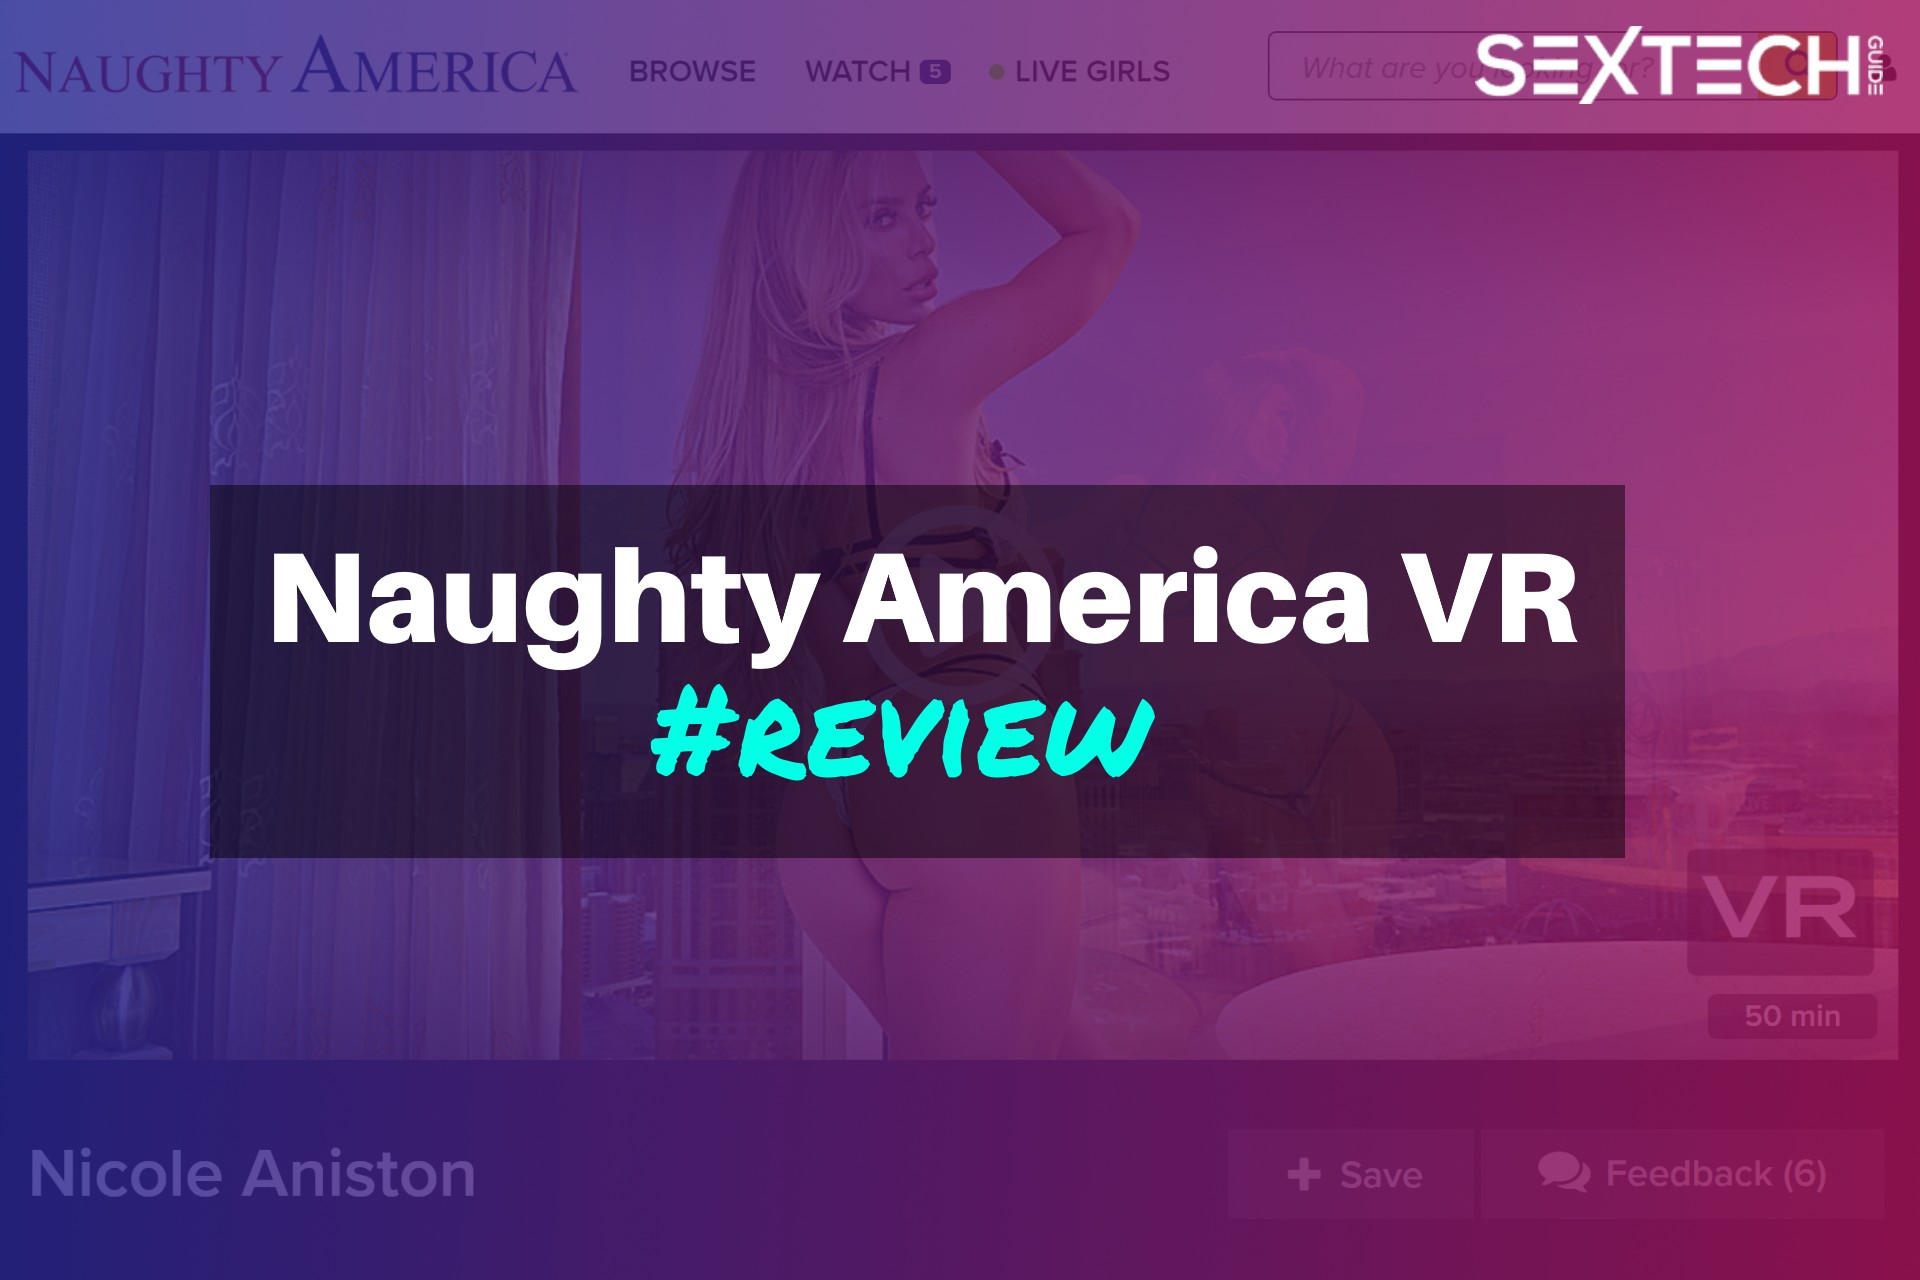 Naughty America VR review